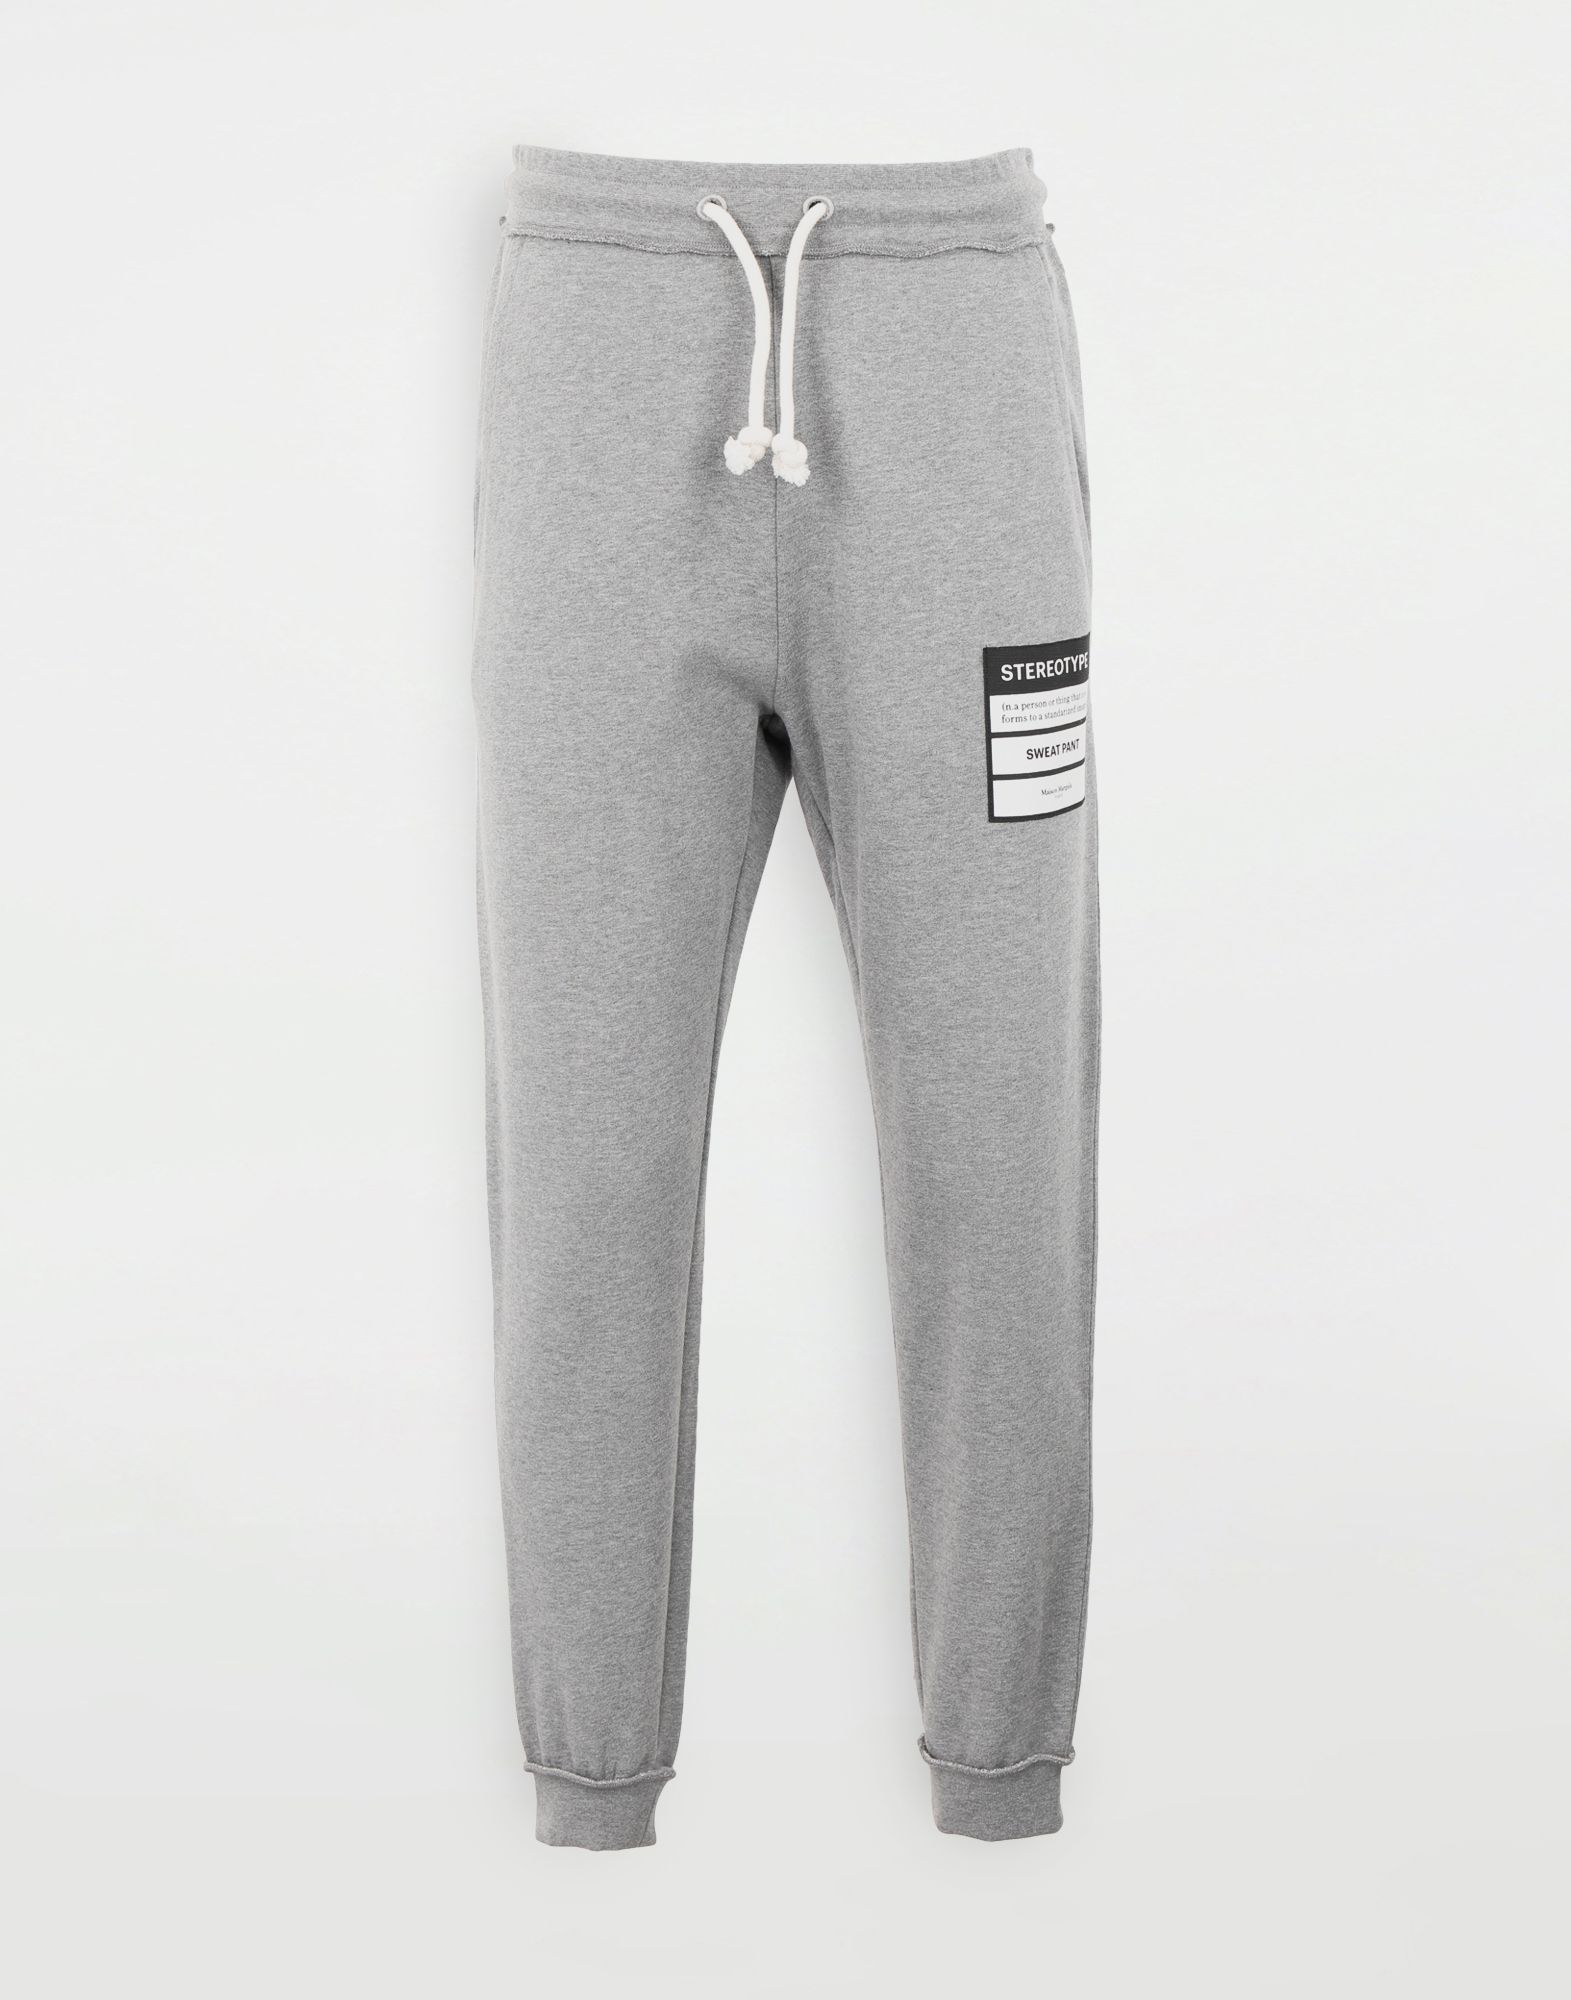 MAISON MARGIELA Stereotype joggers Trousers Man f